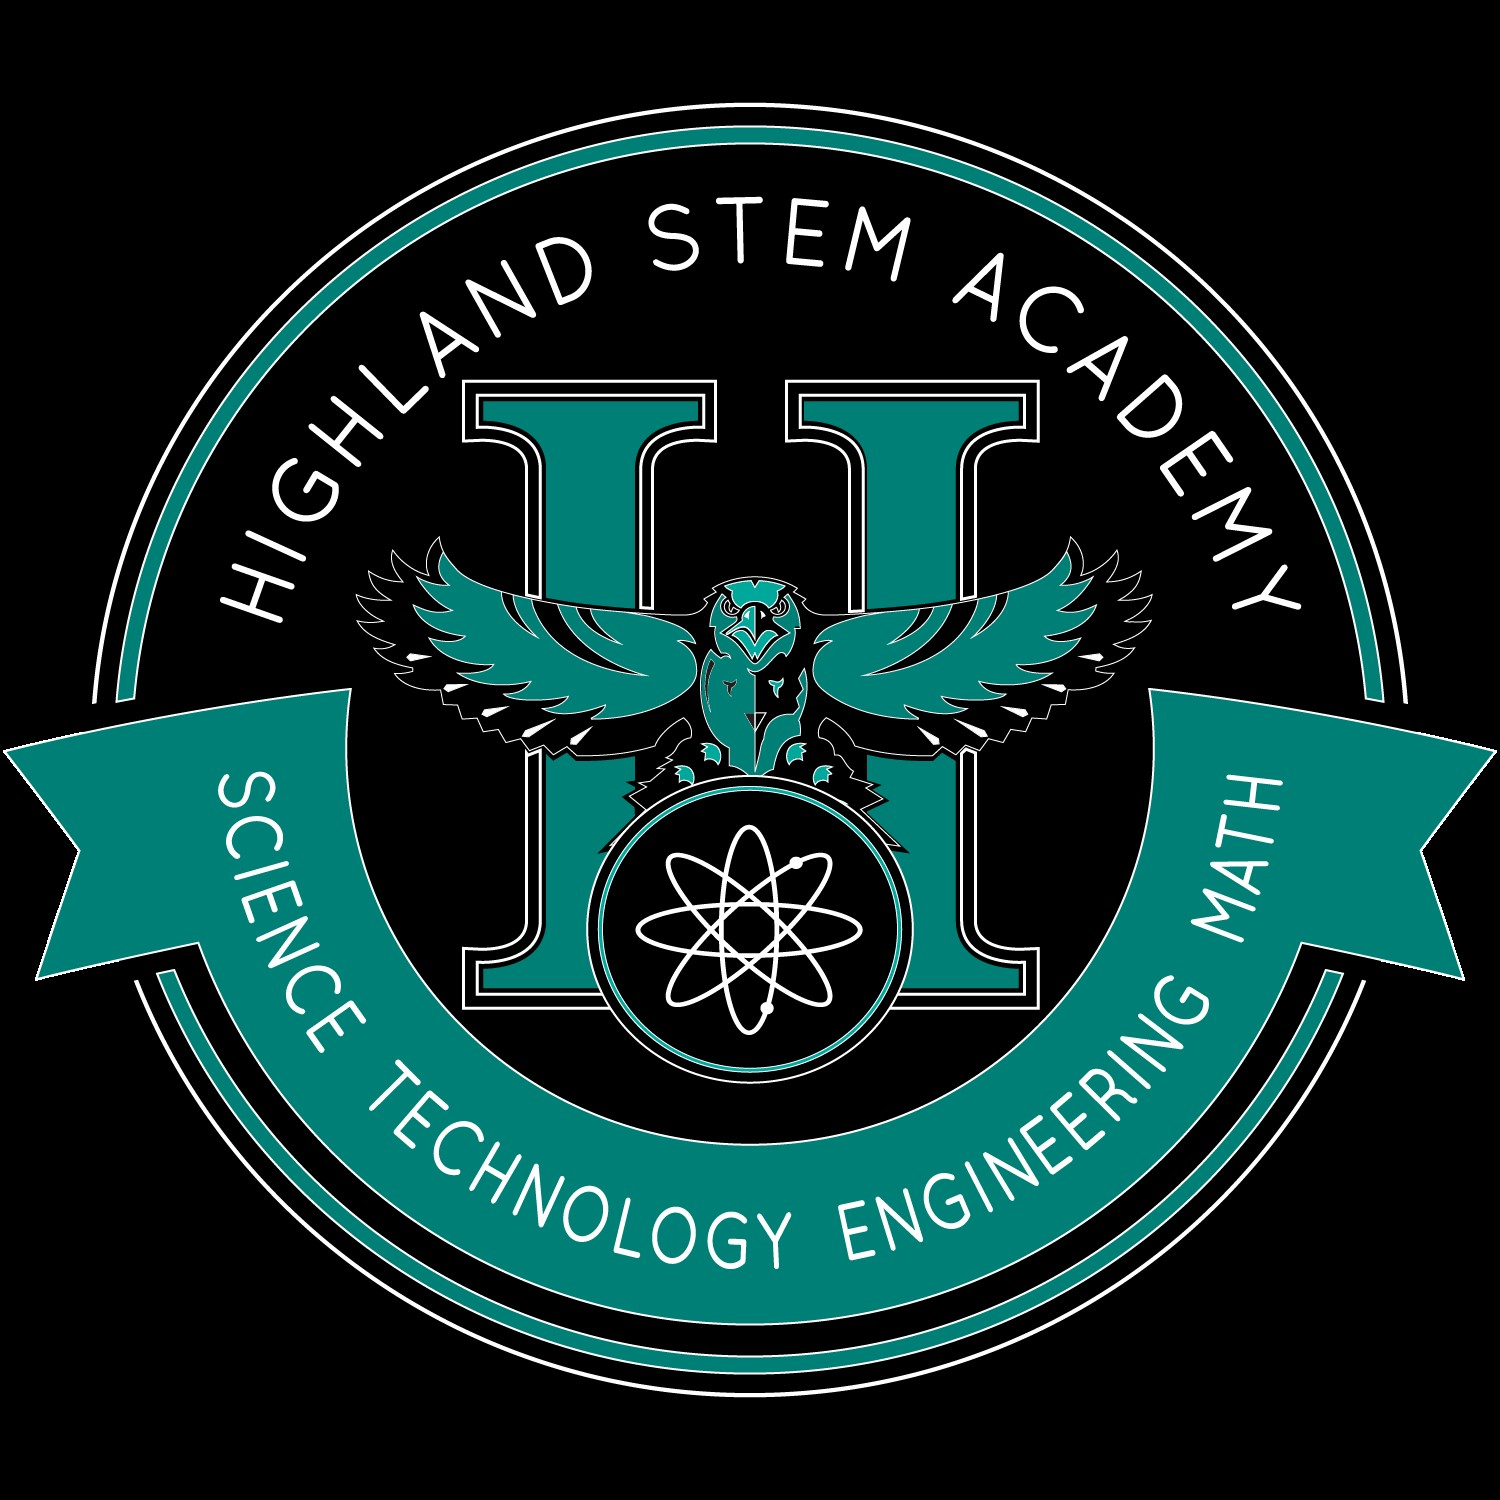 Highland STEM Academy Science Technology Engineering Math